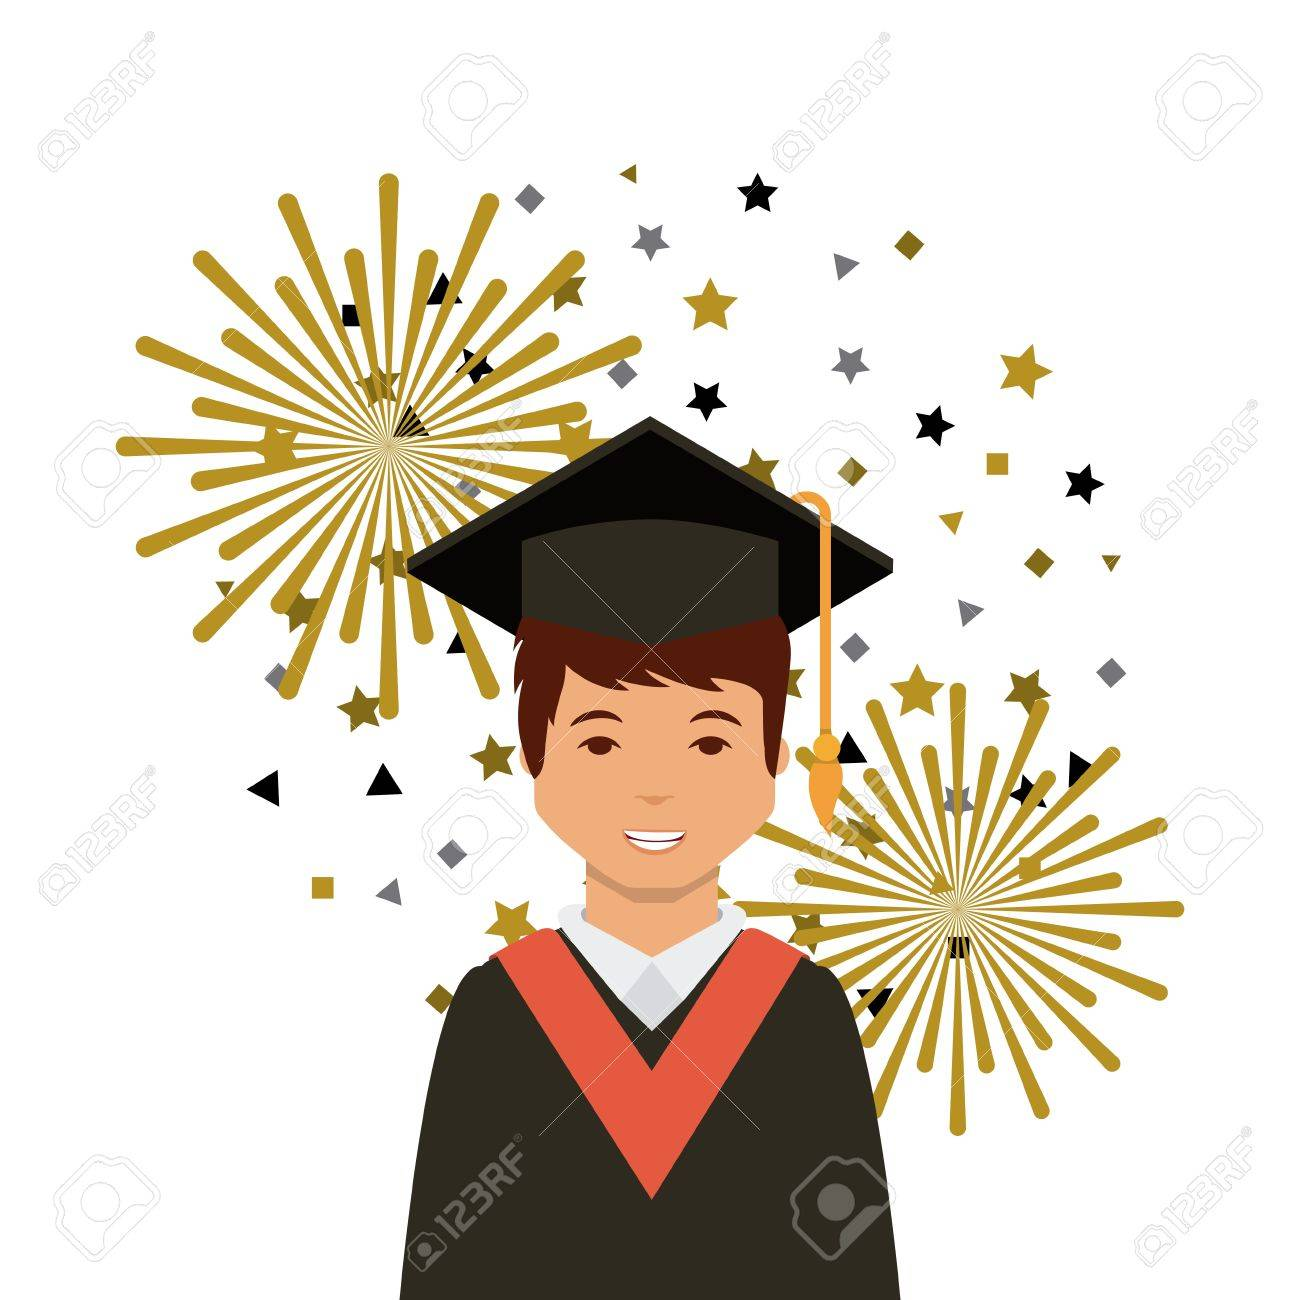 Cartoon Graduate Man With Graduation Gown And Hat Icon Over White ...